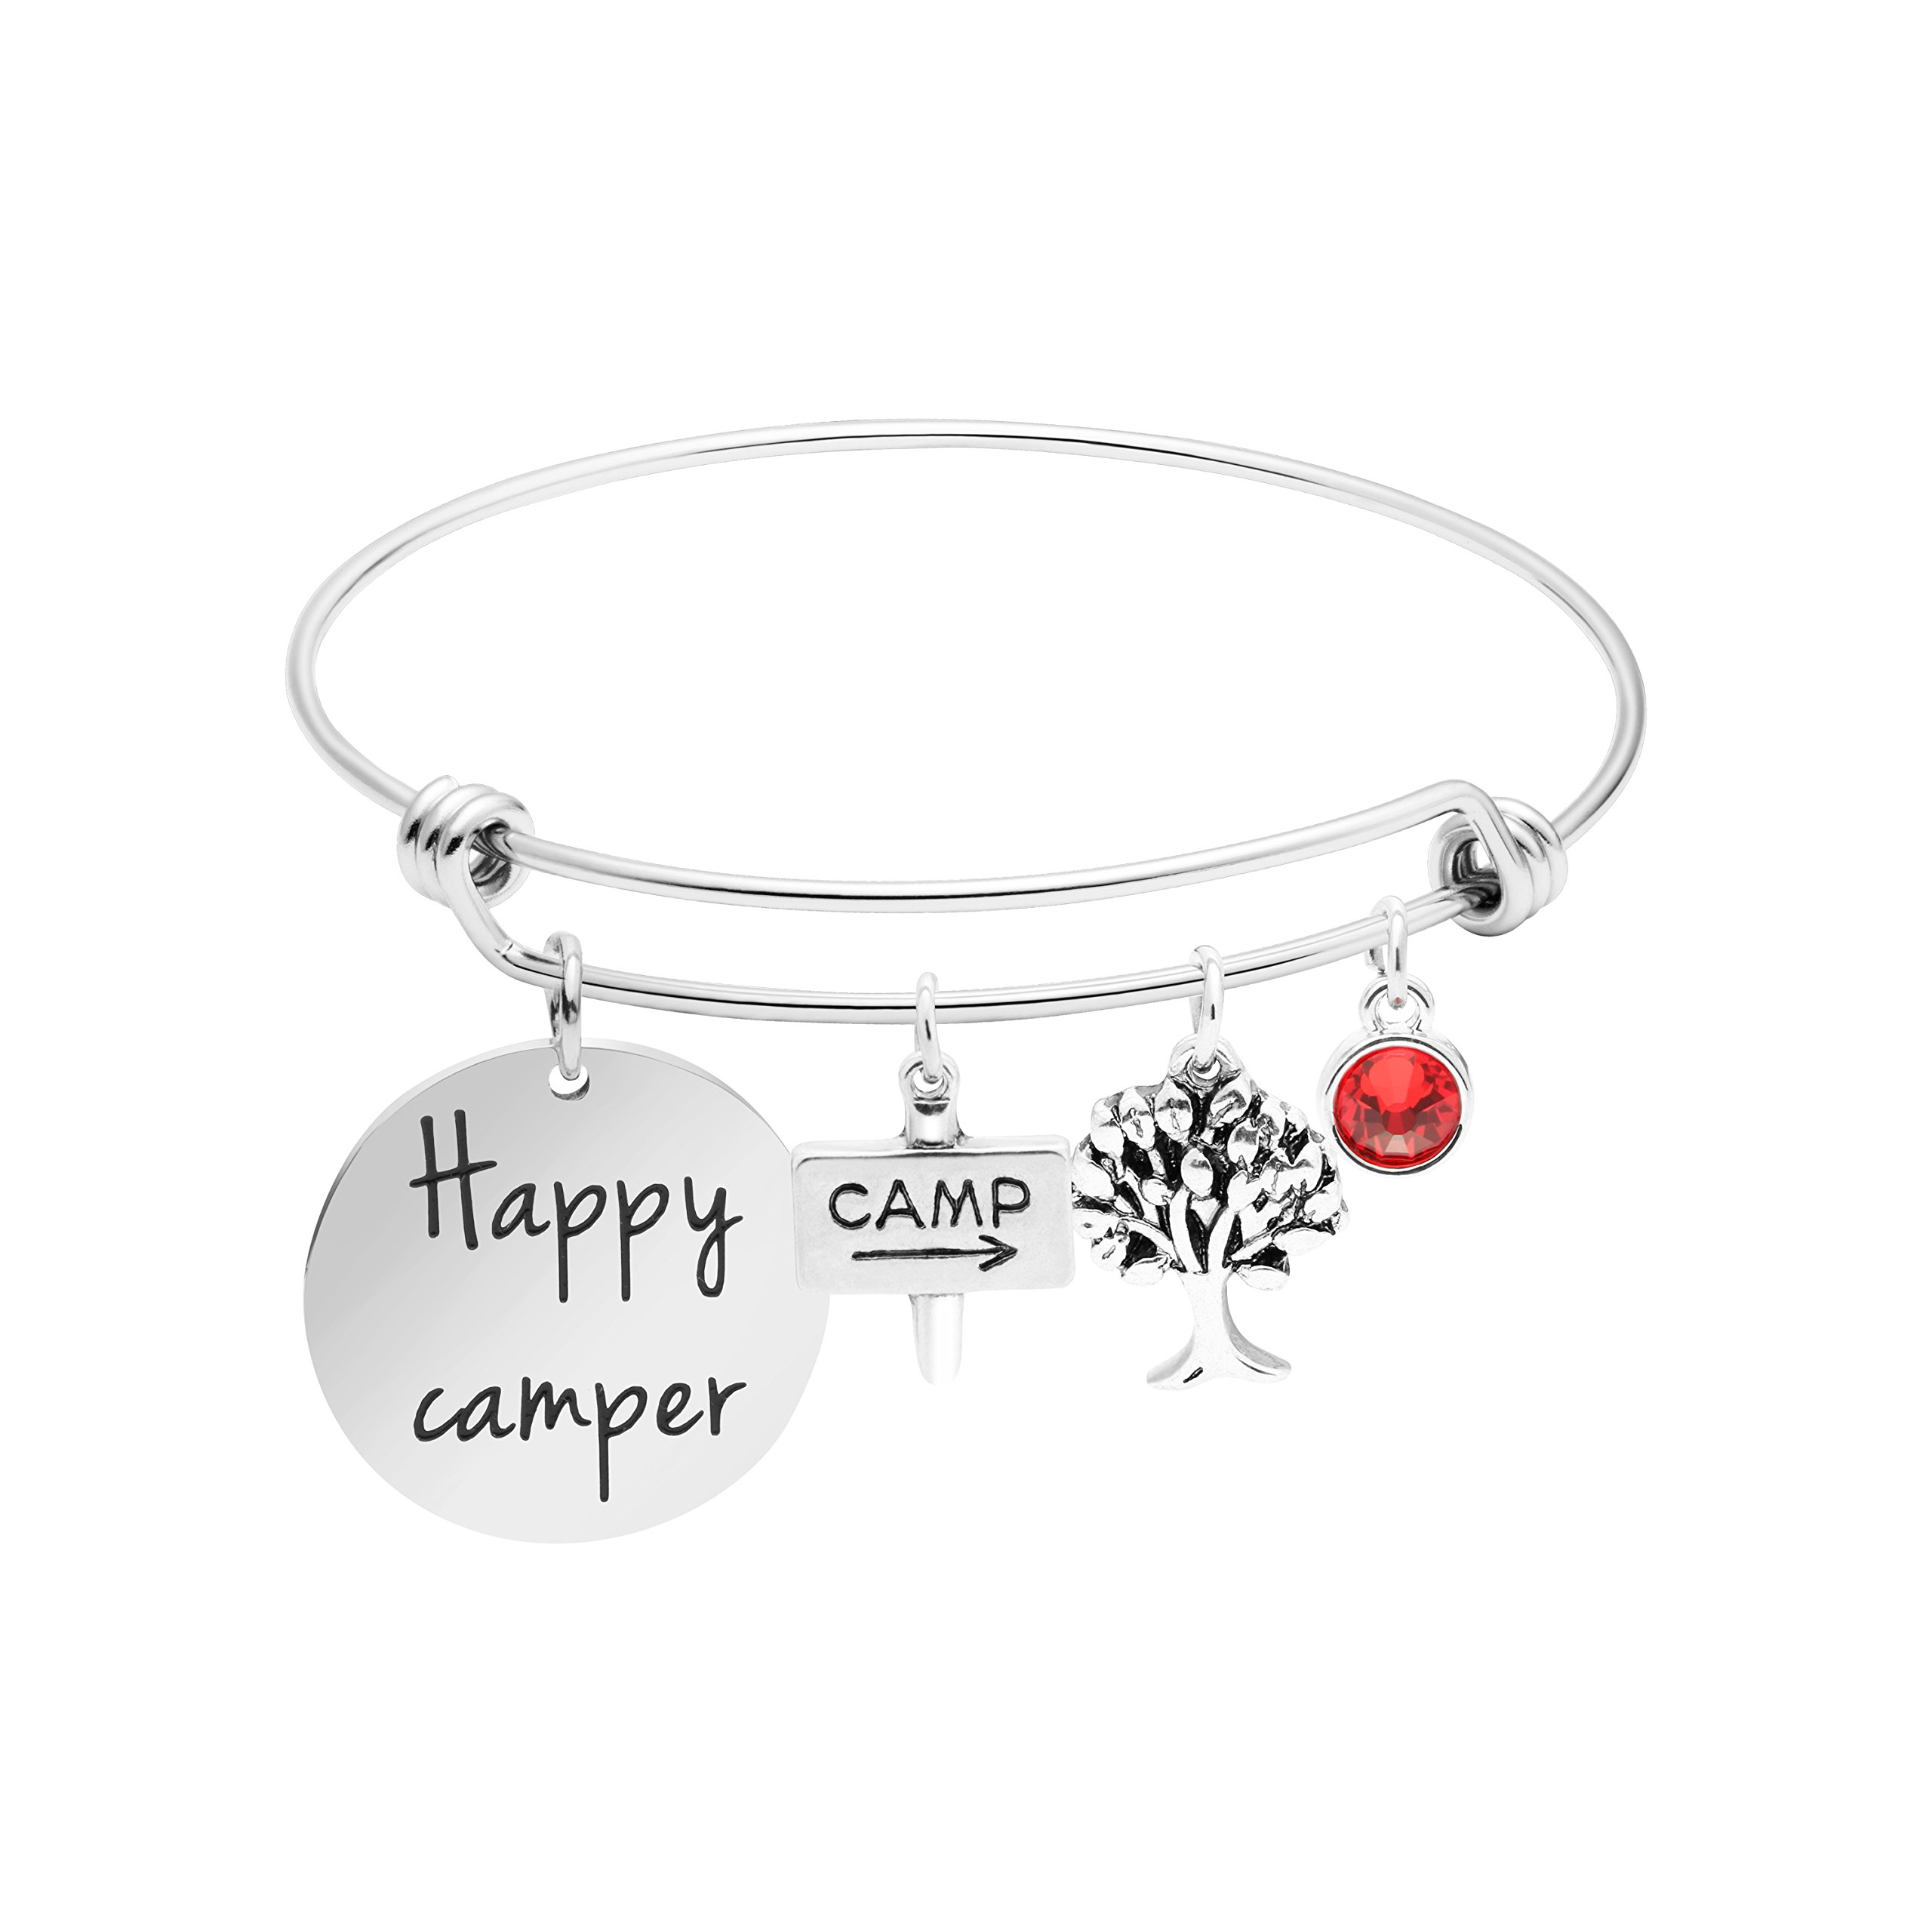 Awegift Happy Camper Expandable Bangle Bracelet with Charms Find Joy in The Journey Summer Camp Jewelry for Girls